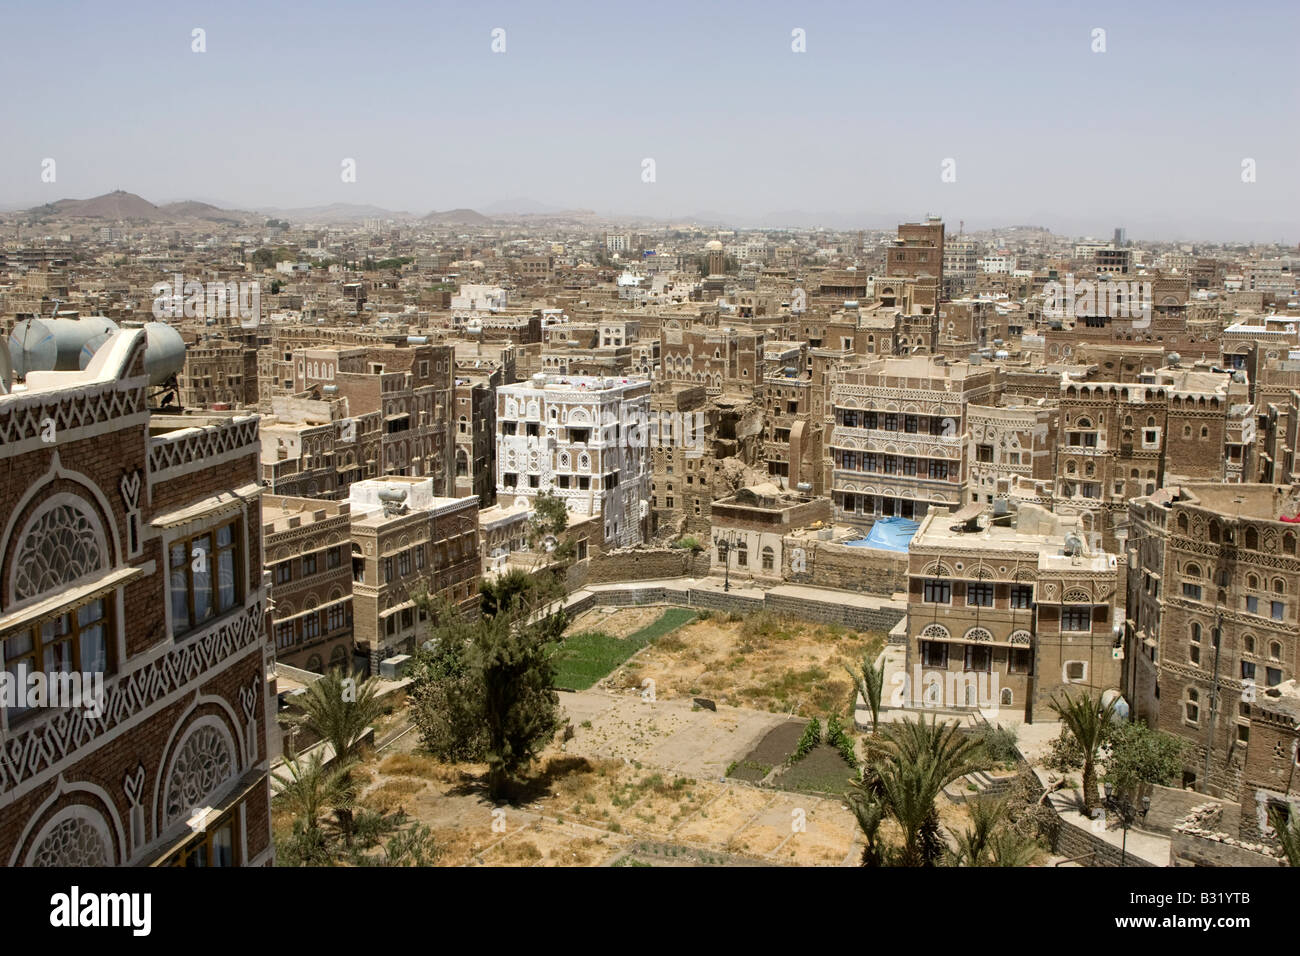 Sanaa the ancient capital city of Yemen Stock Photo